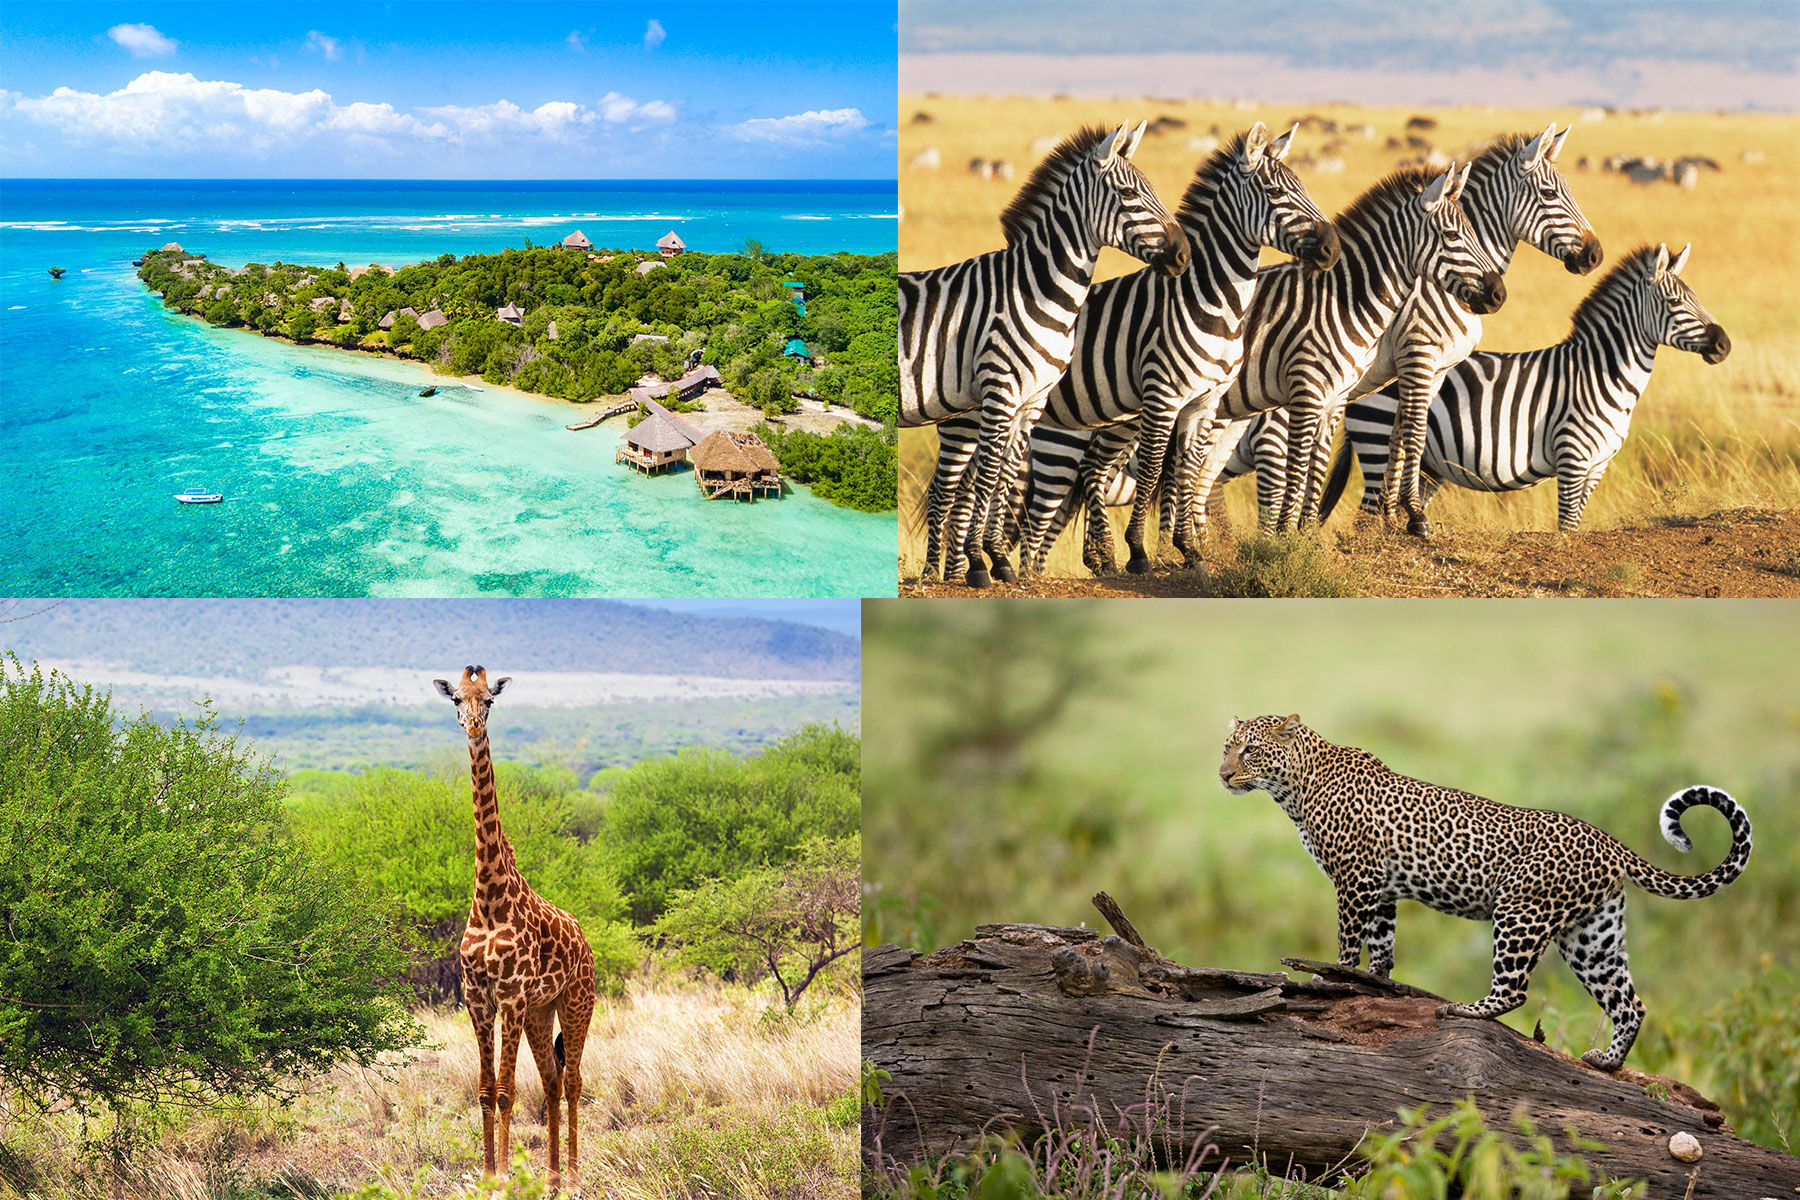 diani-beach-safari-prices-galu-beach-mombasa-tours-company-tsavo-east-west-masai-mara-amboseli-prices-nairobi